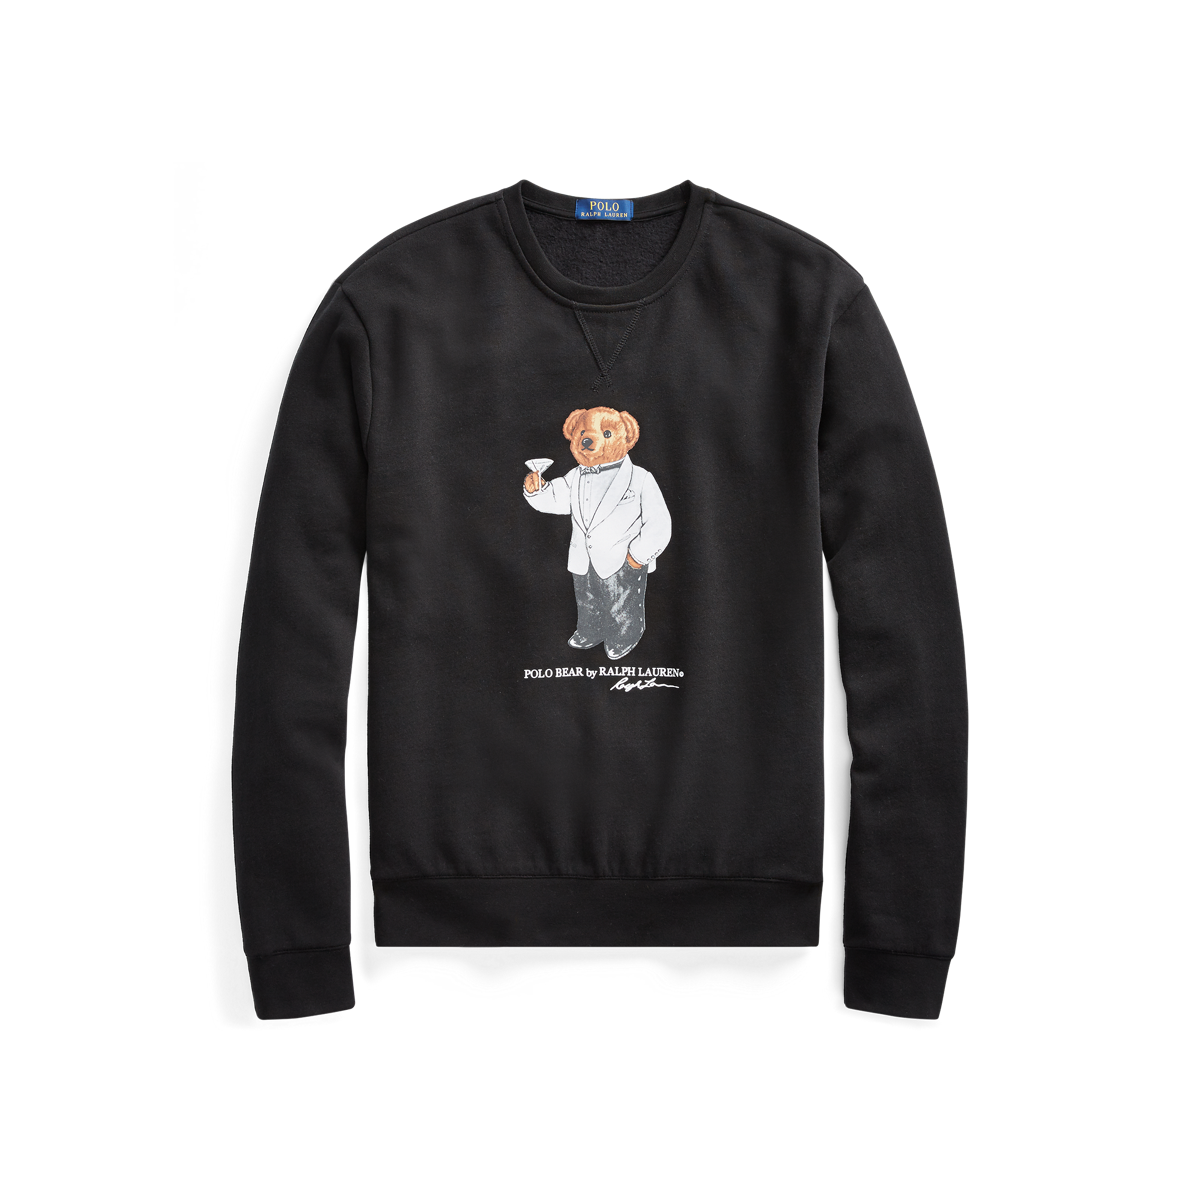 SweatshirtRalph Bear Martini Lauren Martini Lauren Bear Martini SweatshirtRalph Bear SweatshirtRalph Fr Fr 5A4SjLc3Rq